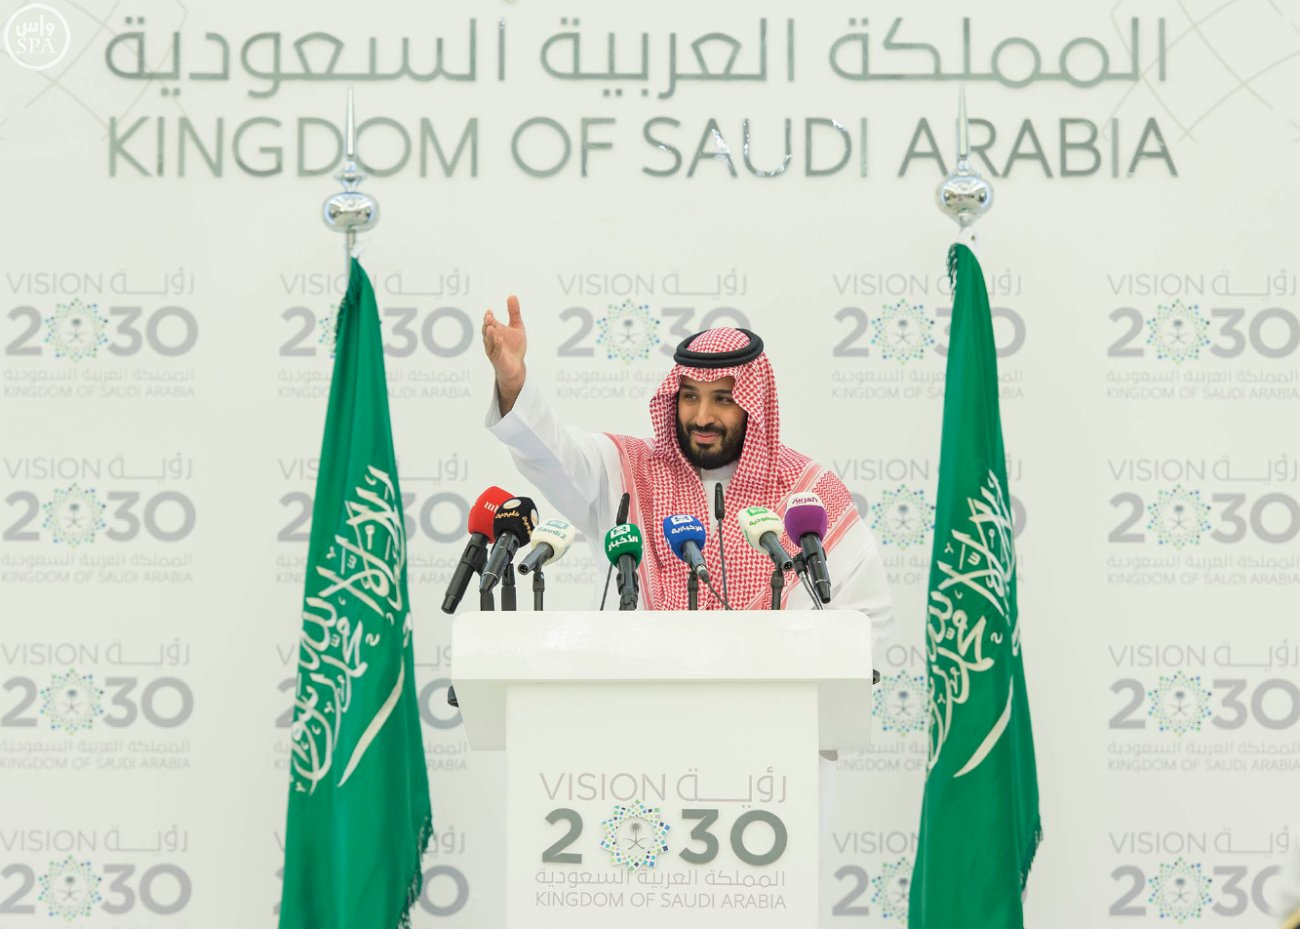 Pipelines Or Pipe Dreams? Reforming The Saudi Economy